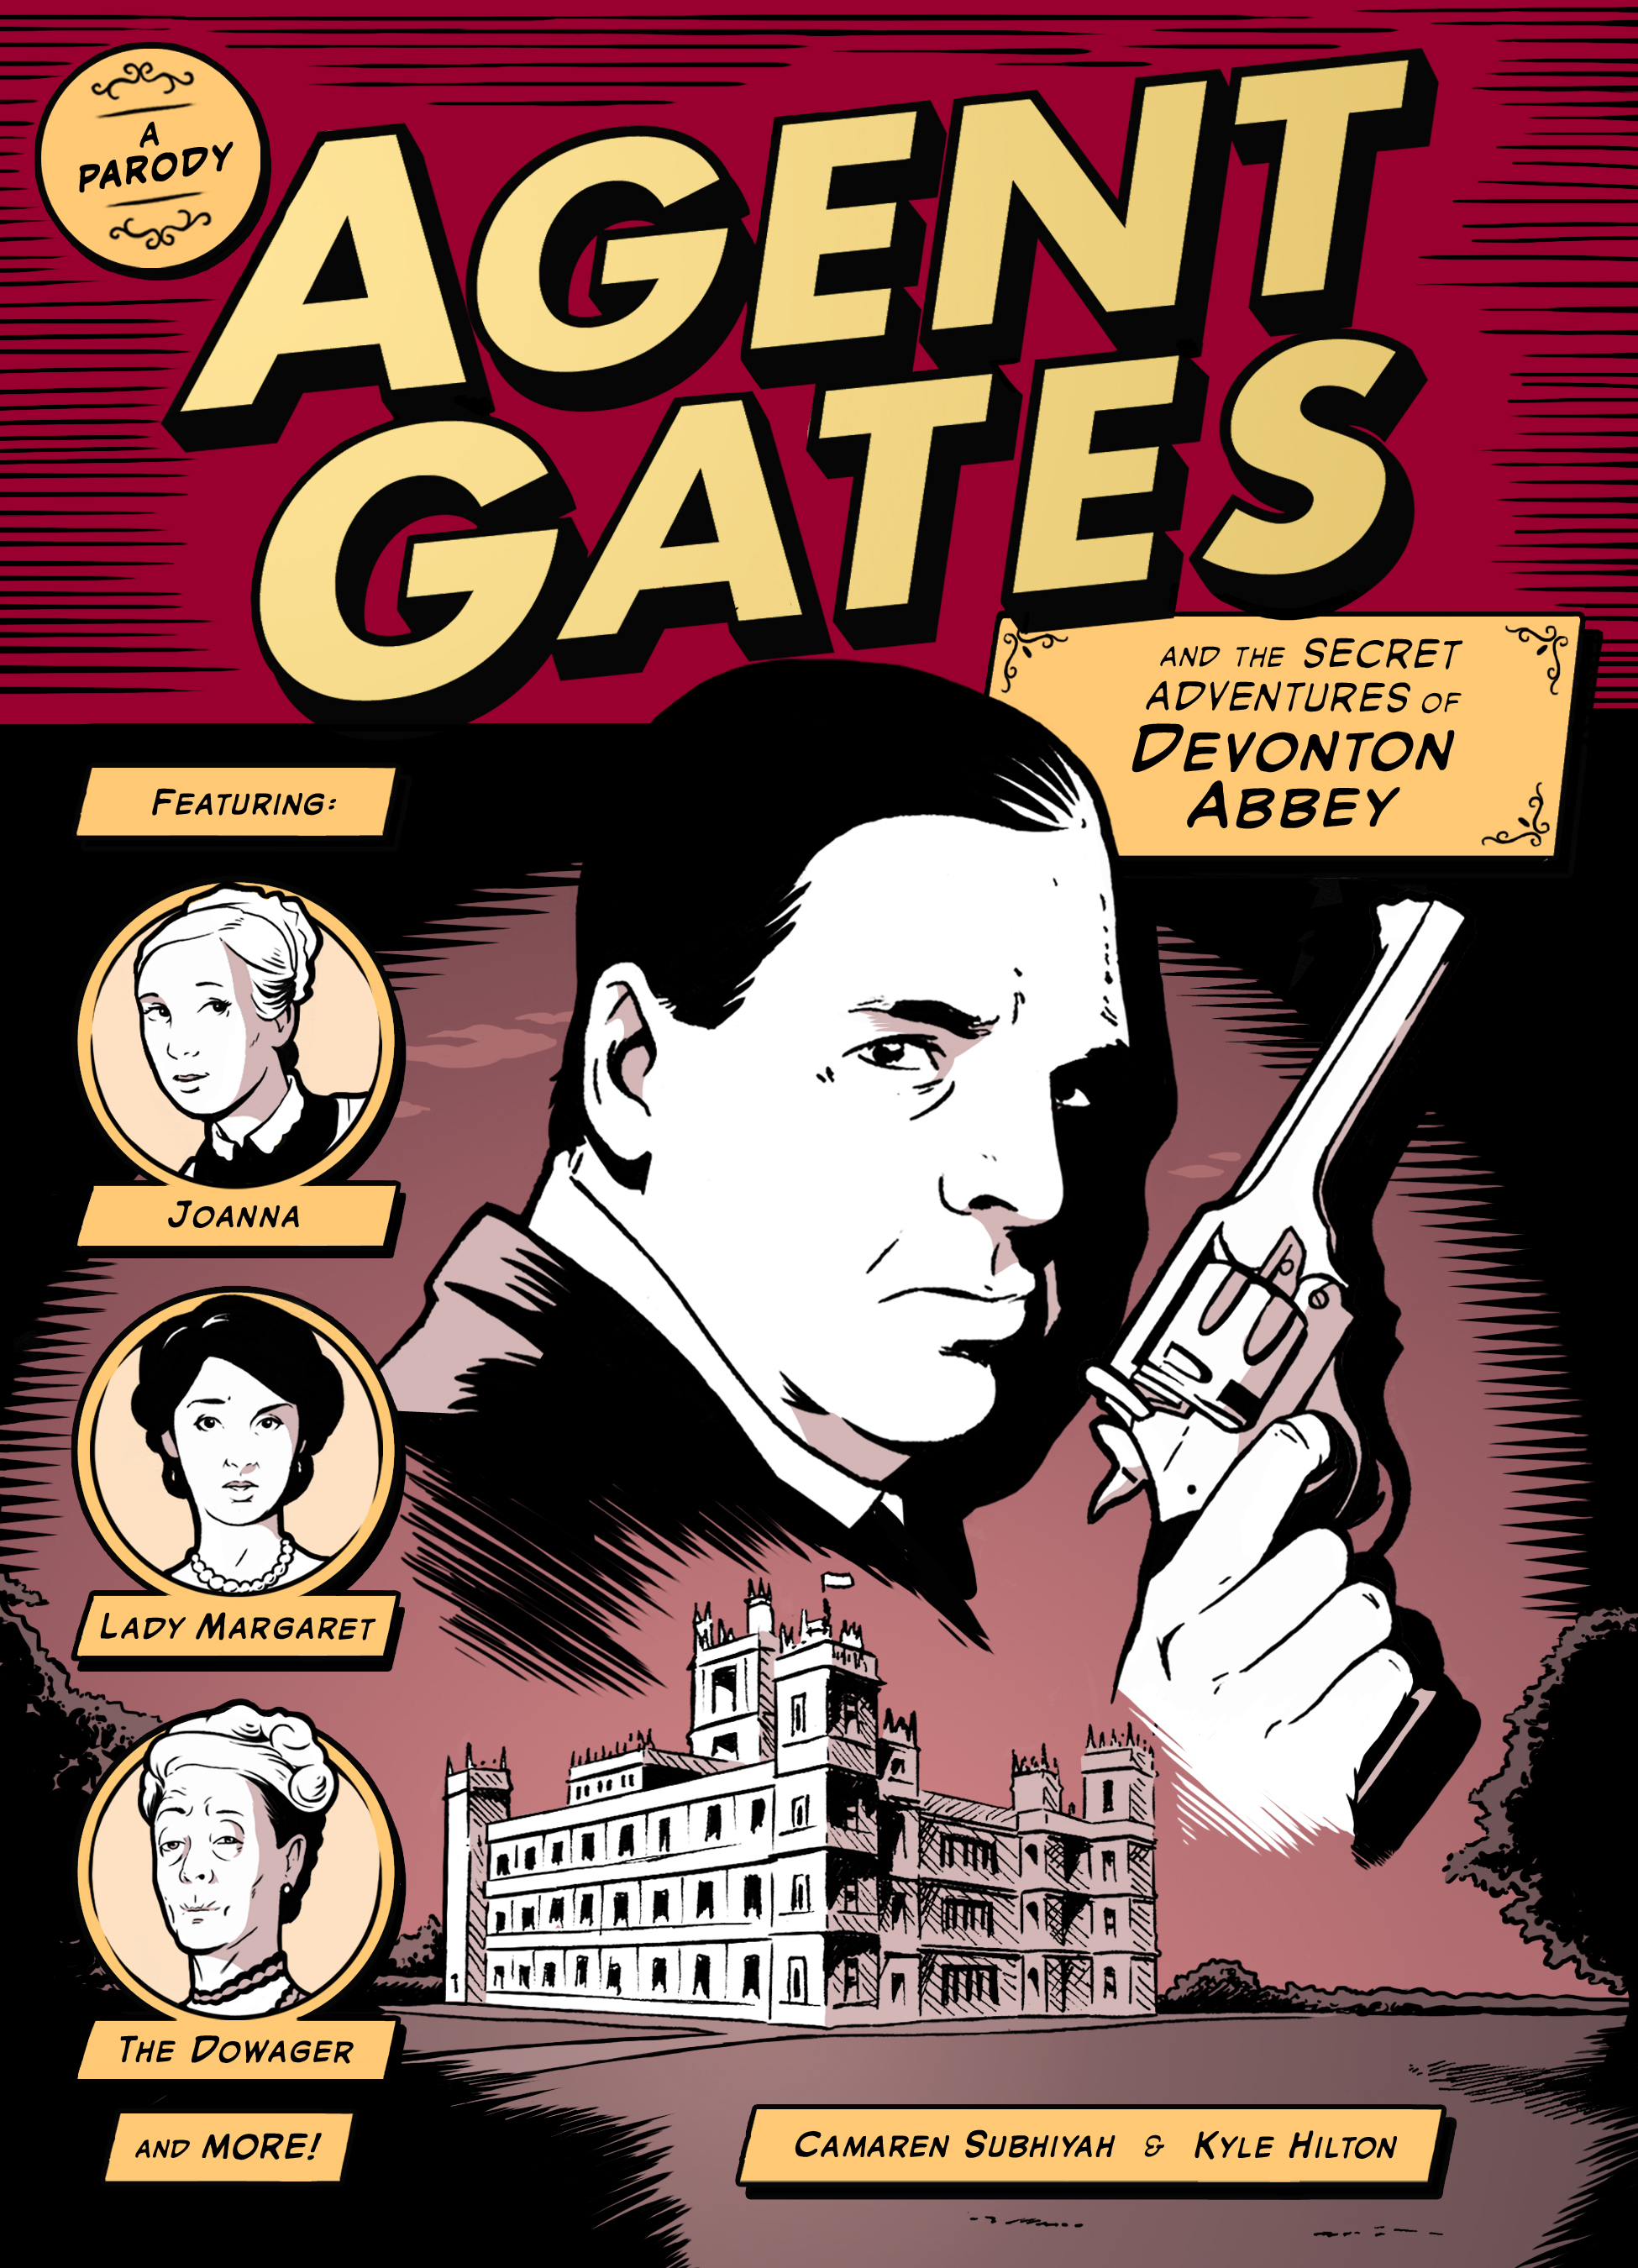 Agent Gates and the Secret Adventures of Devonton Abbey A Parody